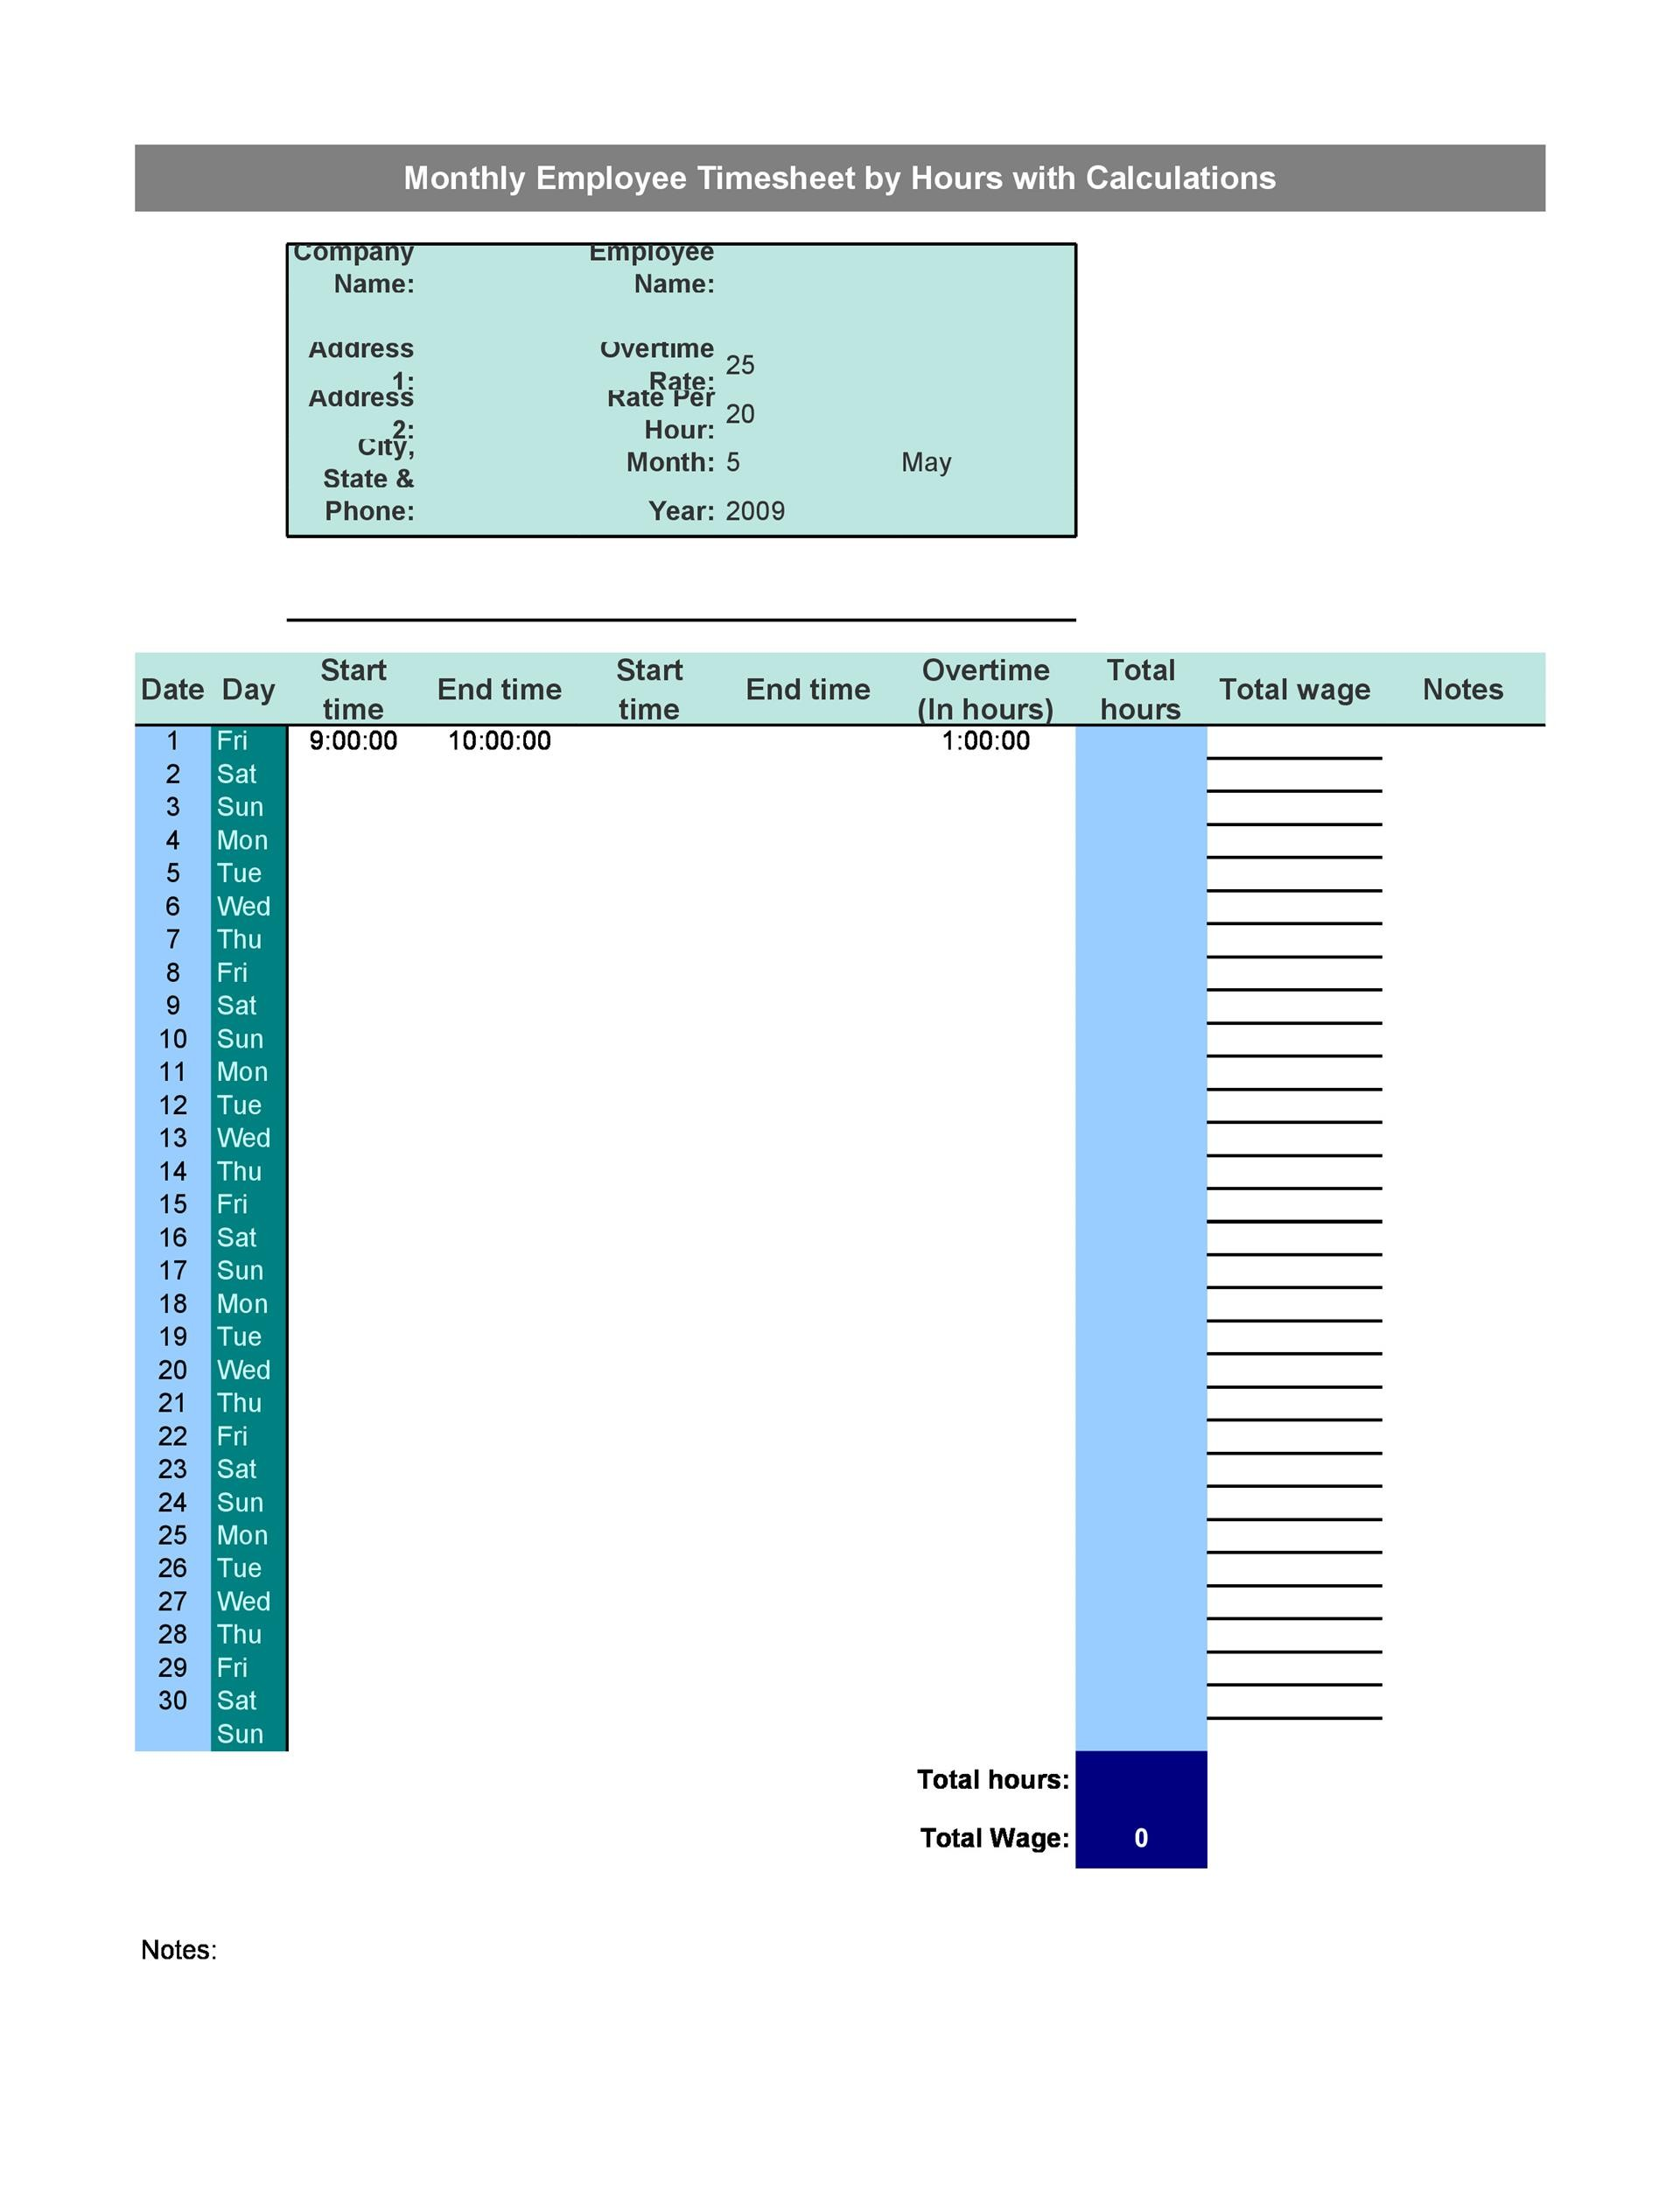 Free Timesheet Time Card Templates Template Lab - Timesheet invoice template free